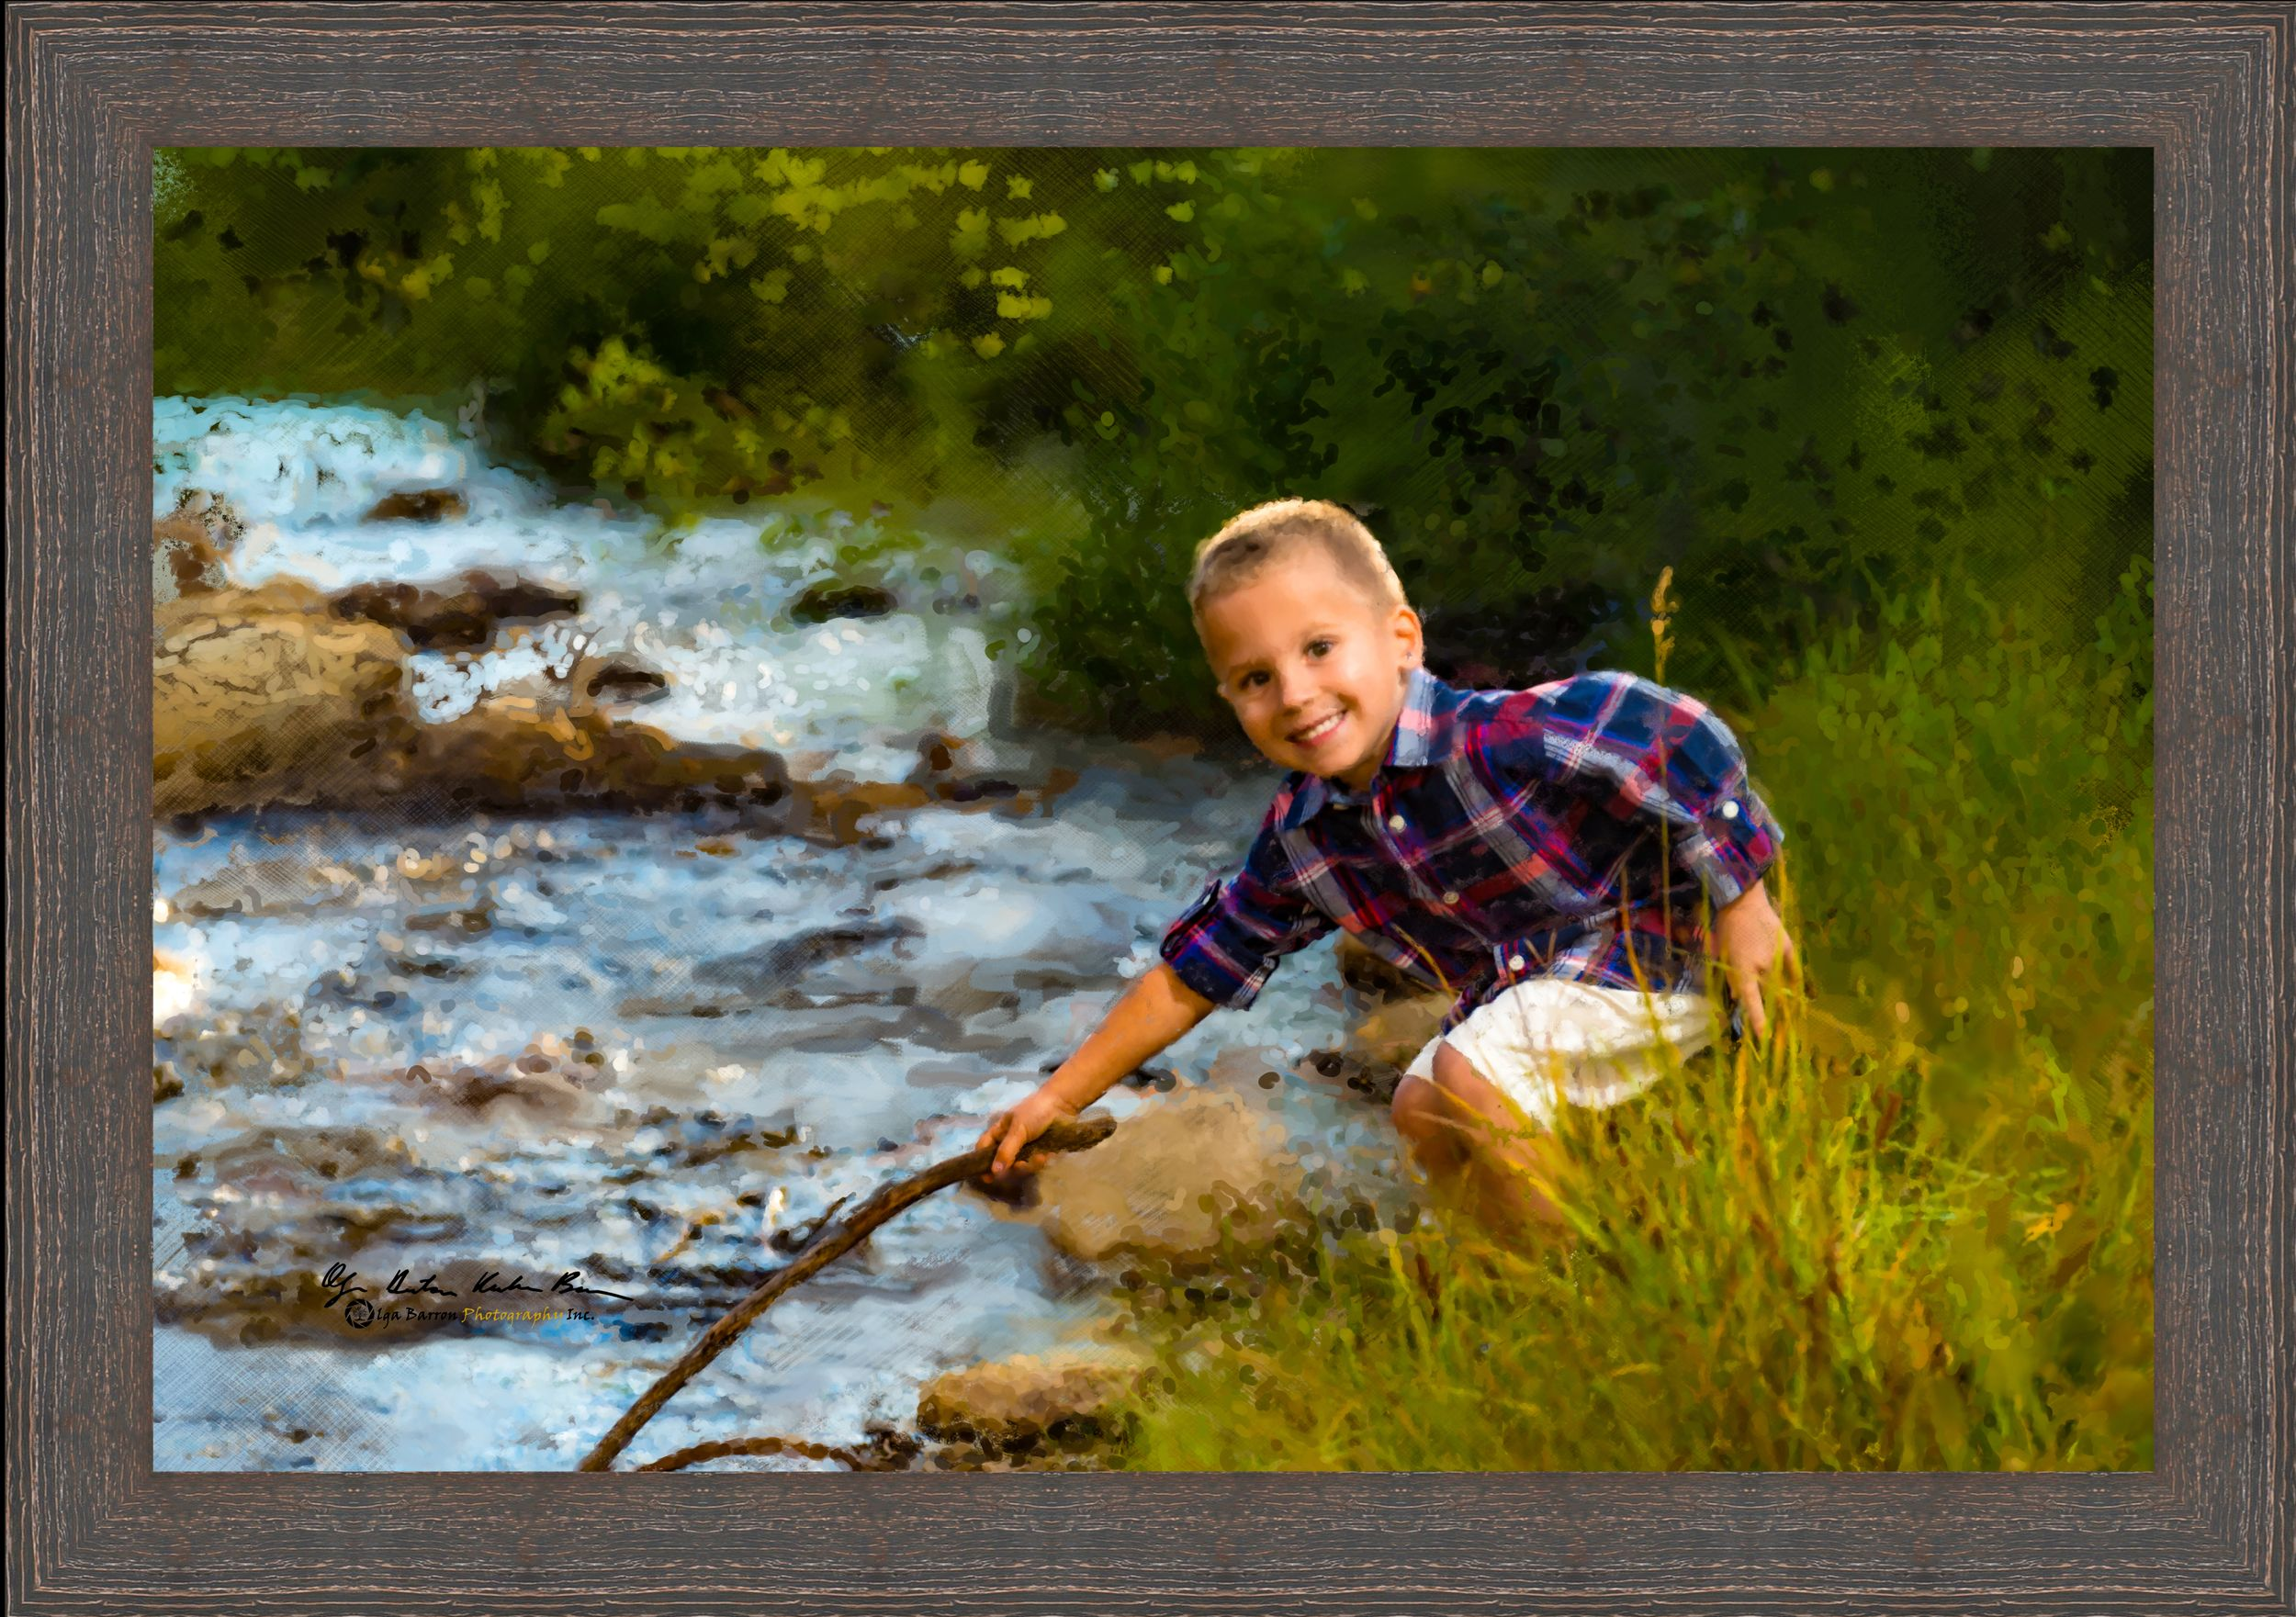 Framed painterly portrait of a boy with stick by a river